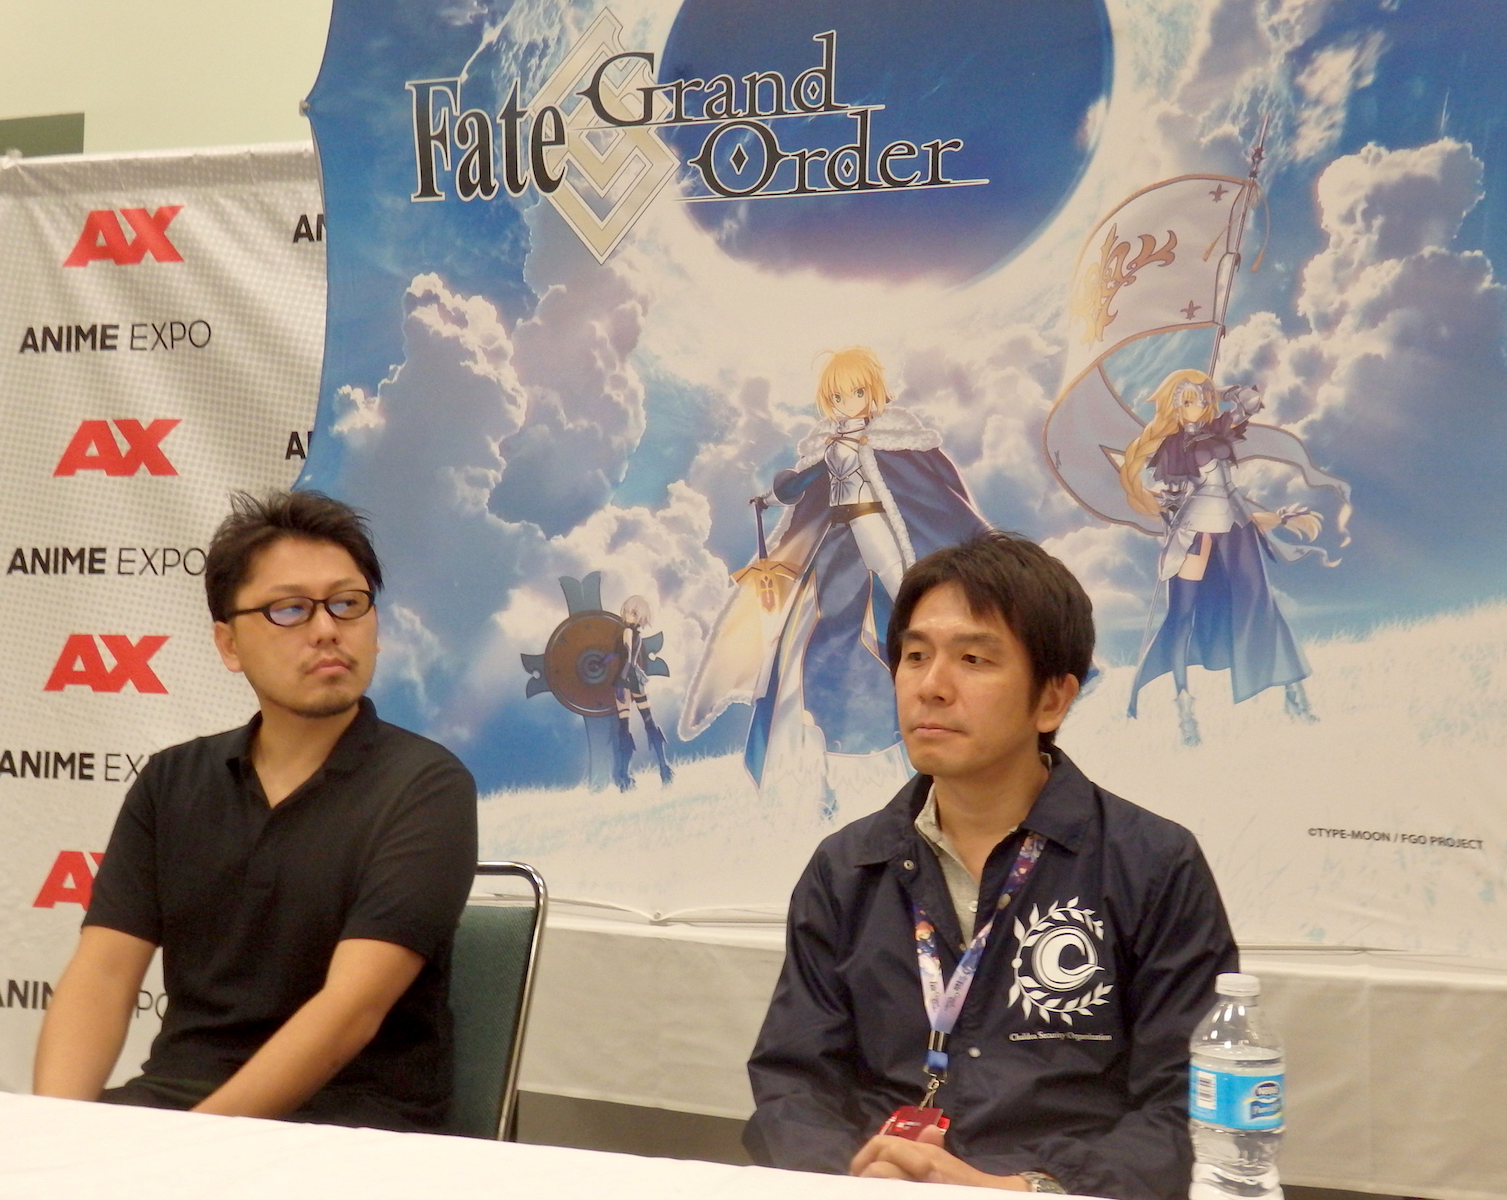 Two Japanese men sitting at a table in front of a banner for Fate: Grand Order.